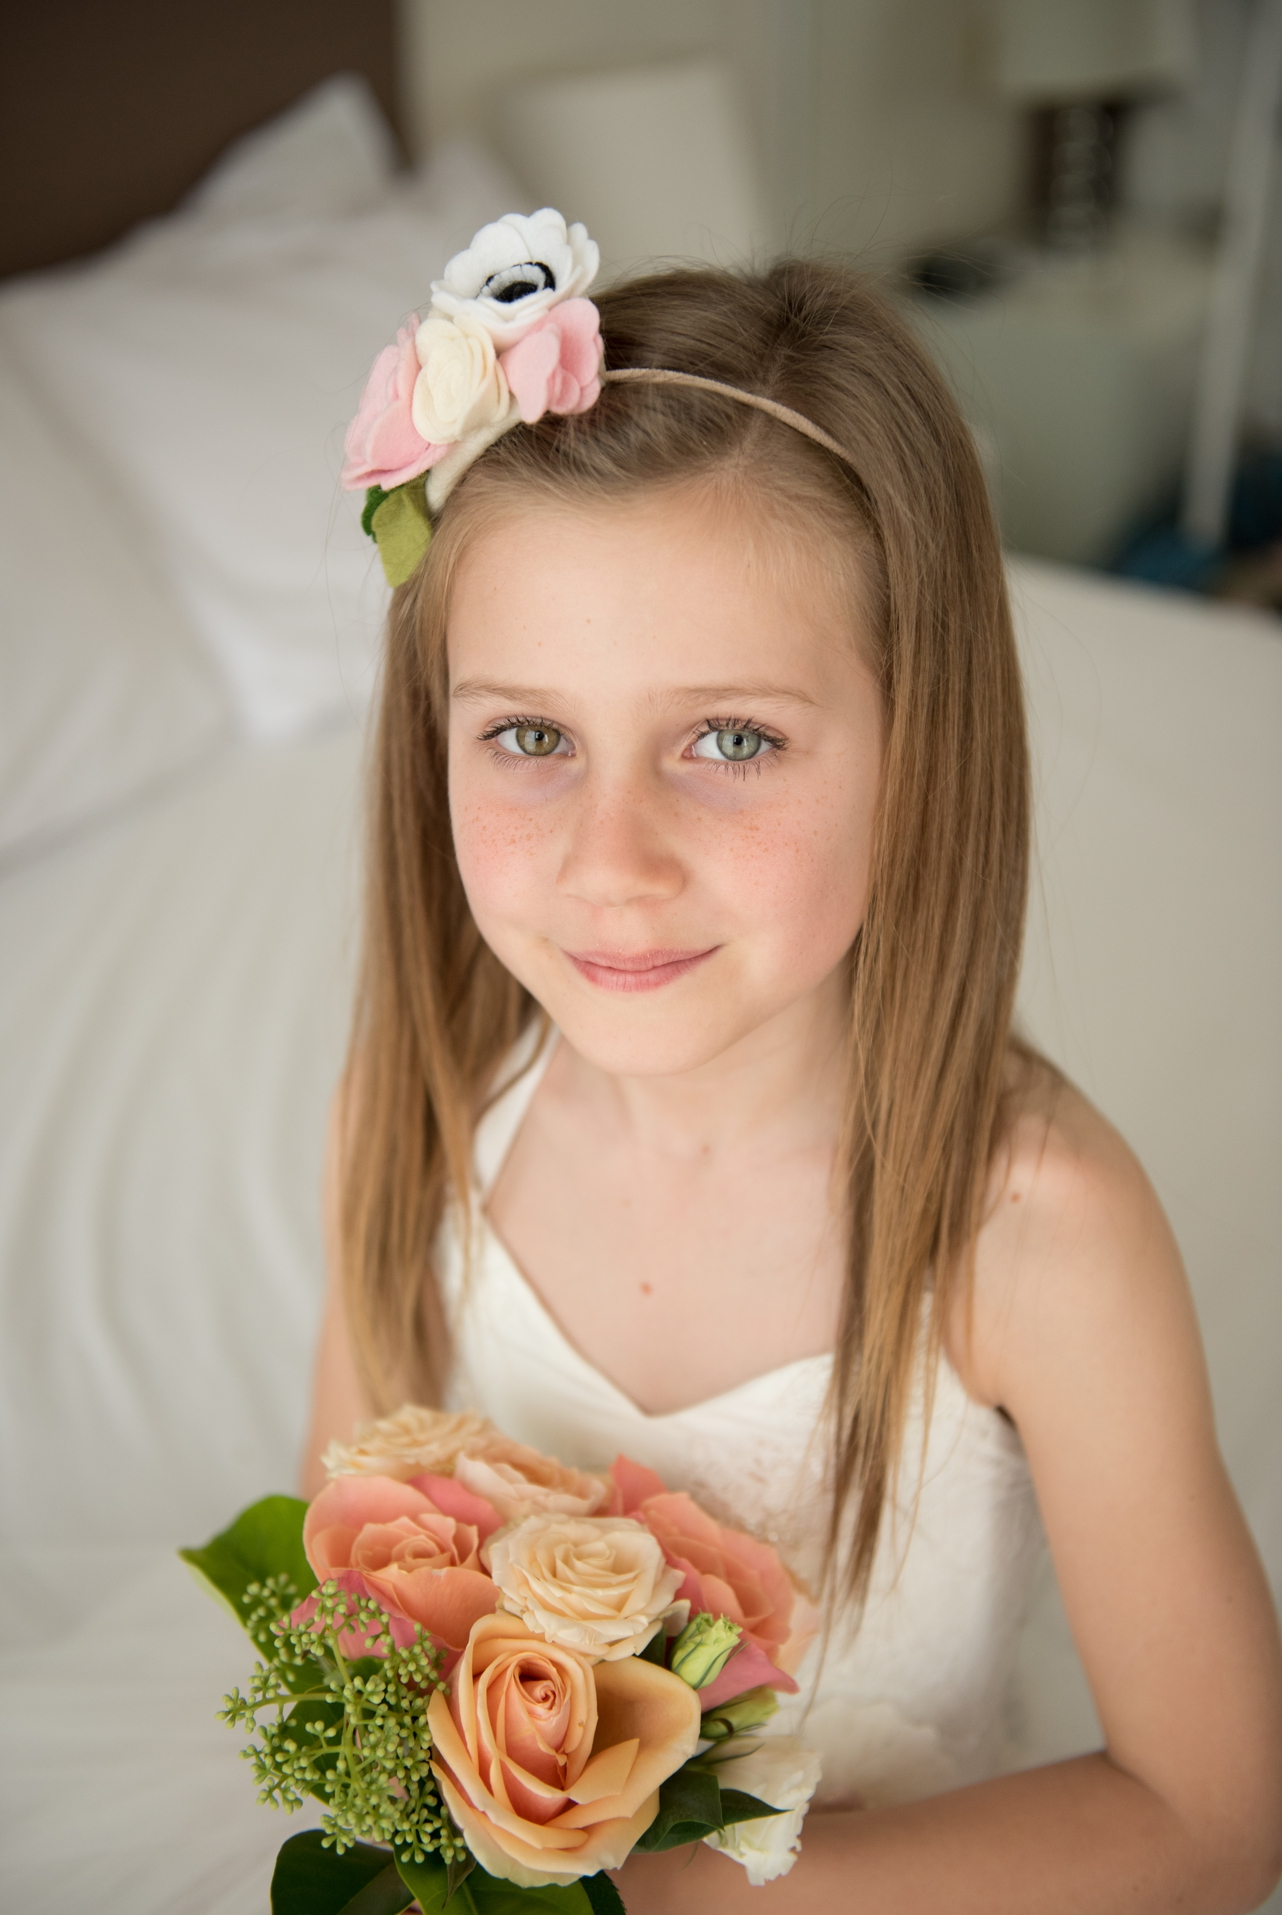 Flower girl_looking_at_camera_holding_her_flowers_smiling